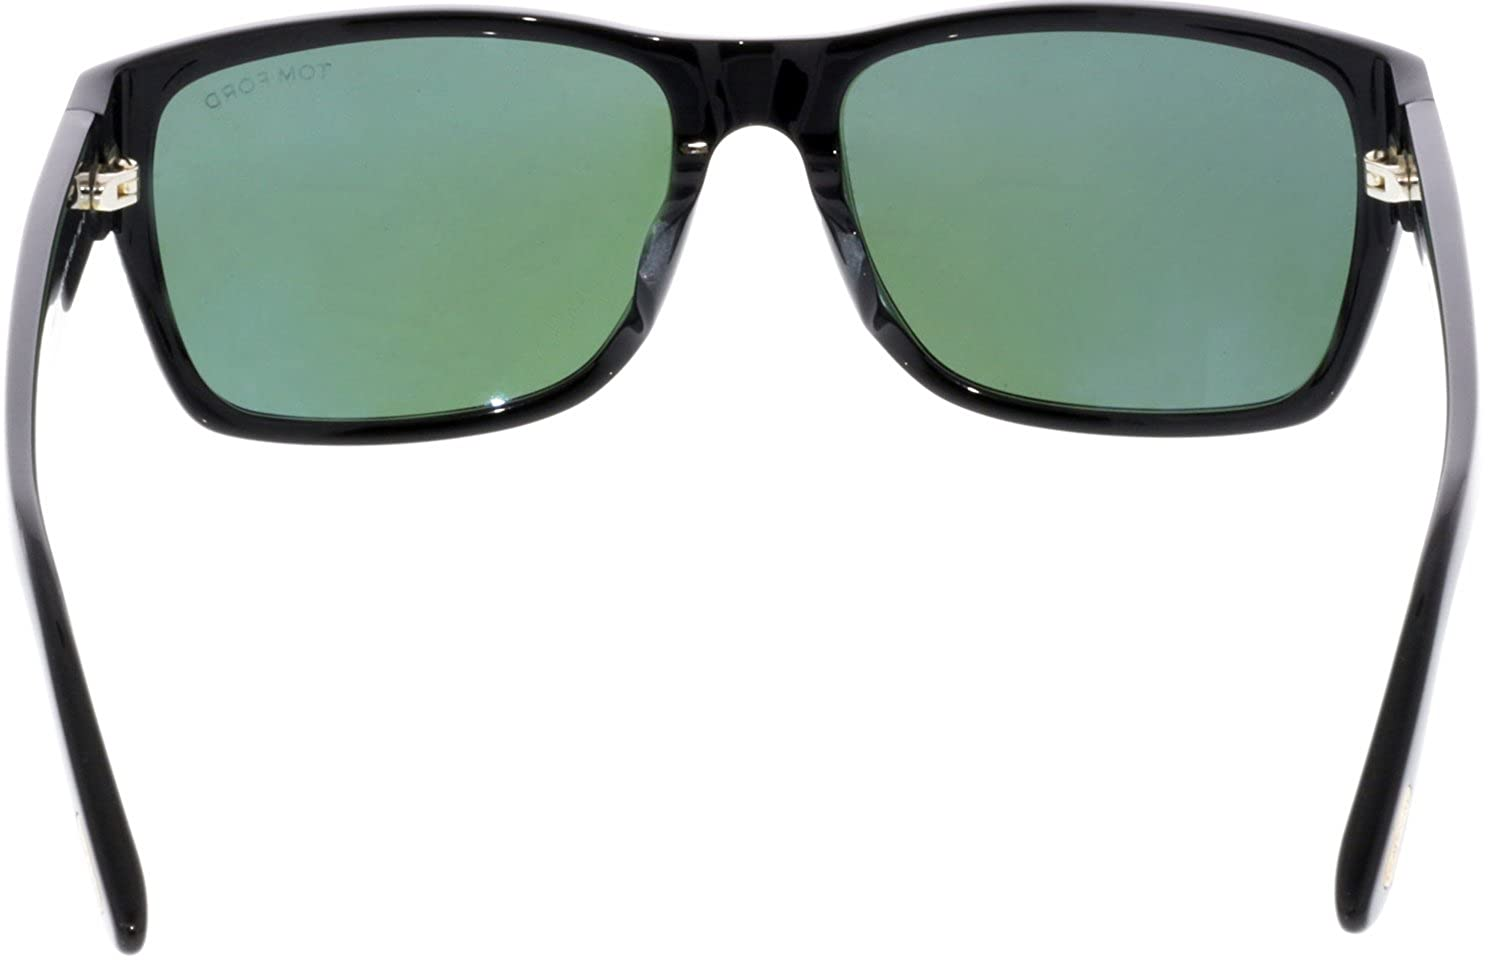 f36e84b706 Sunglasses Tom Ford TF 445-F FT0445-F 01N shiny black   green at Amazon  Men s Clothing store